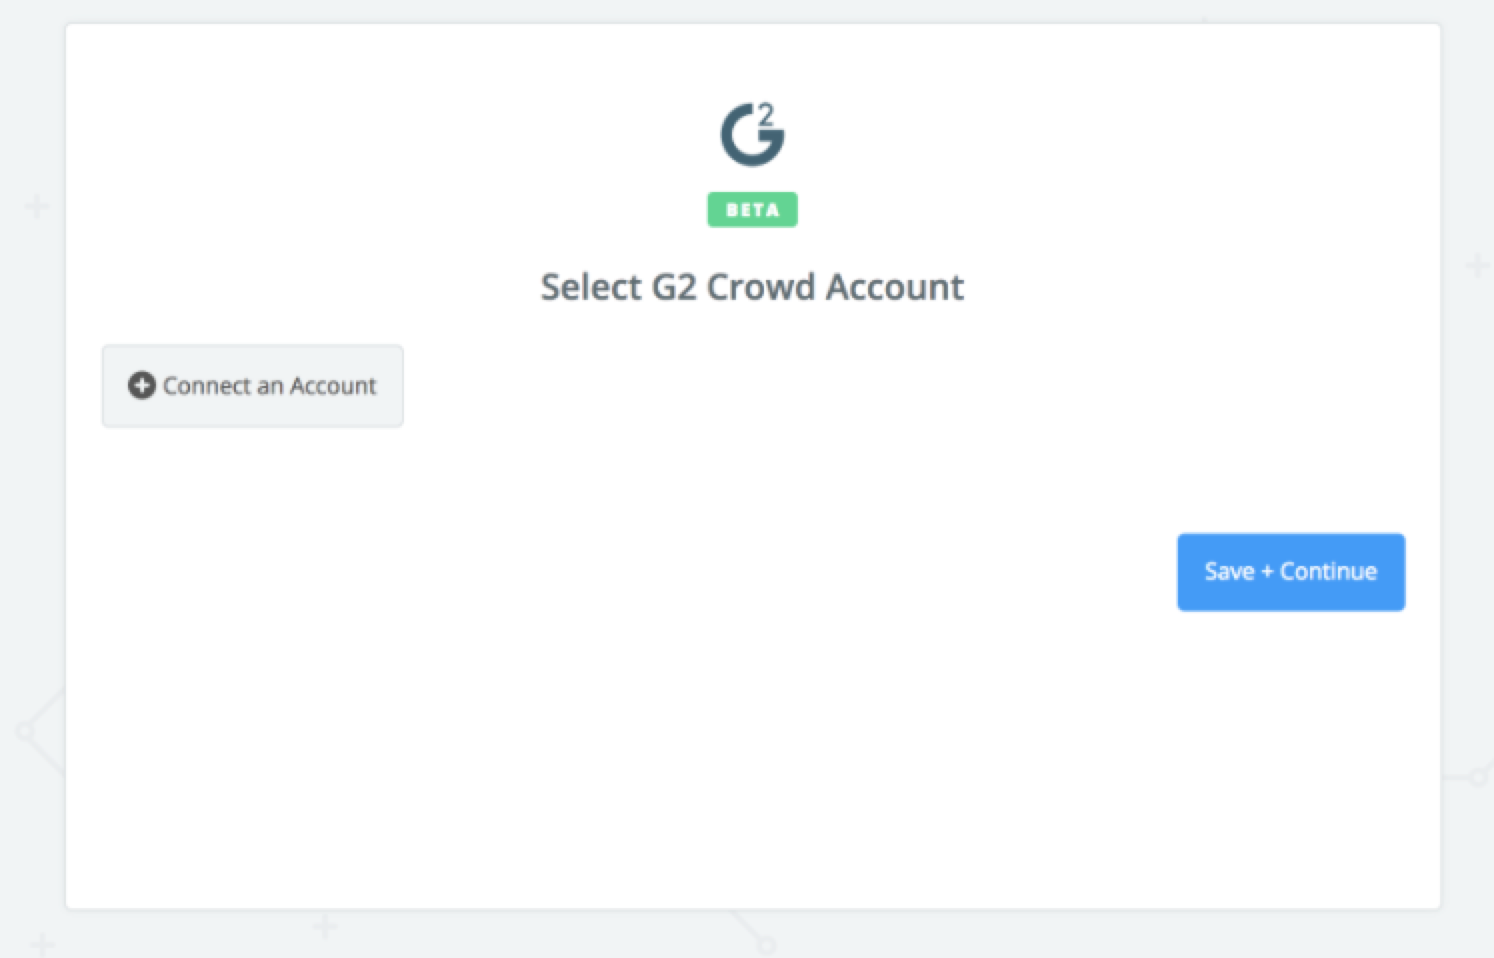 Click to connect G2 Crowd